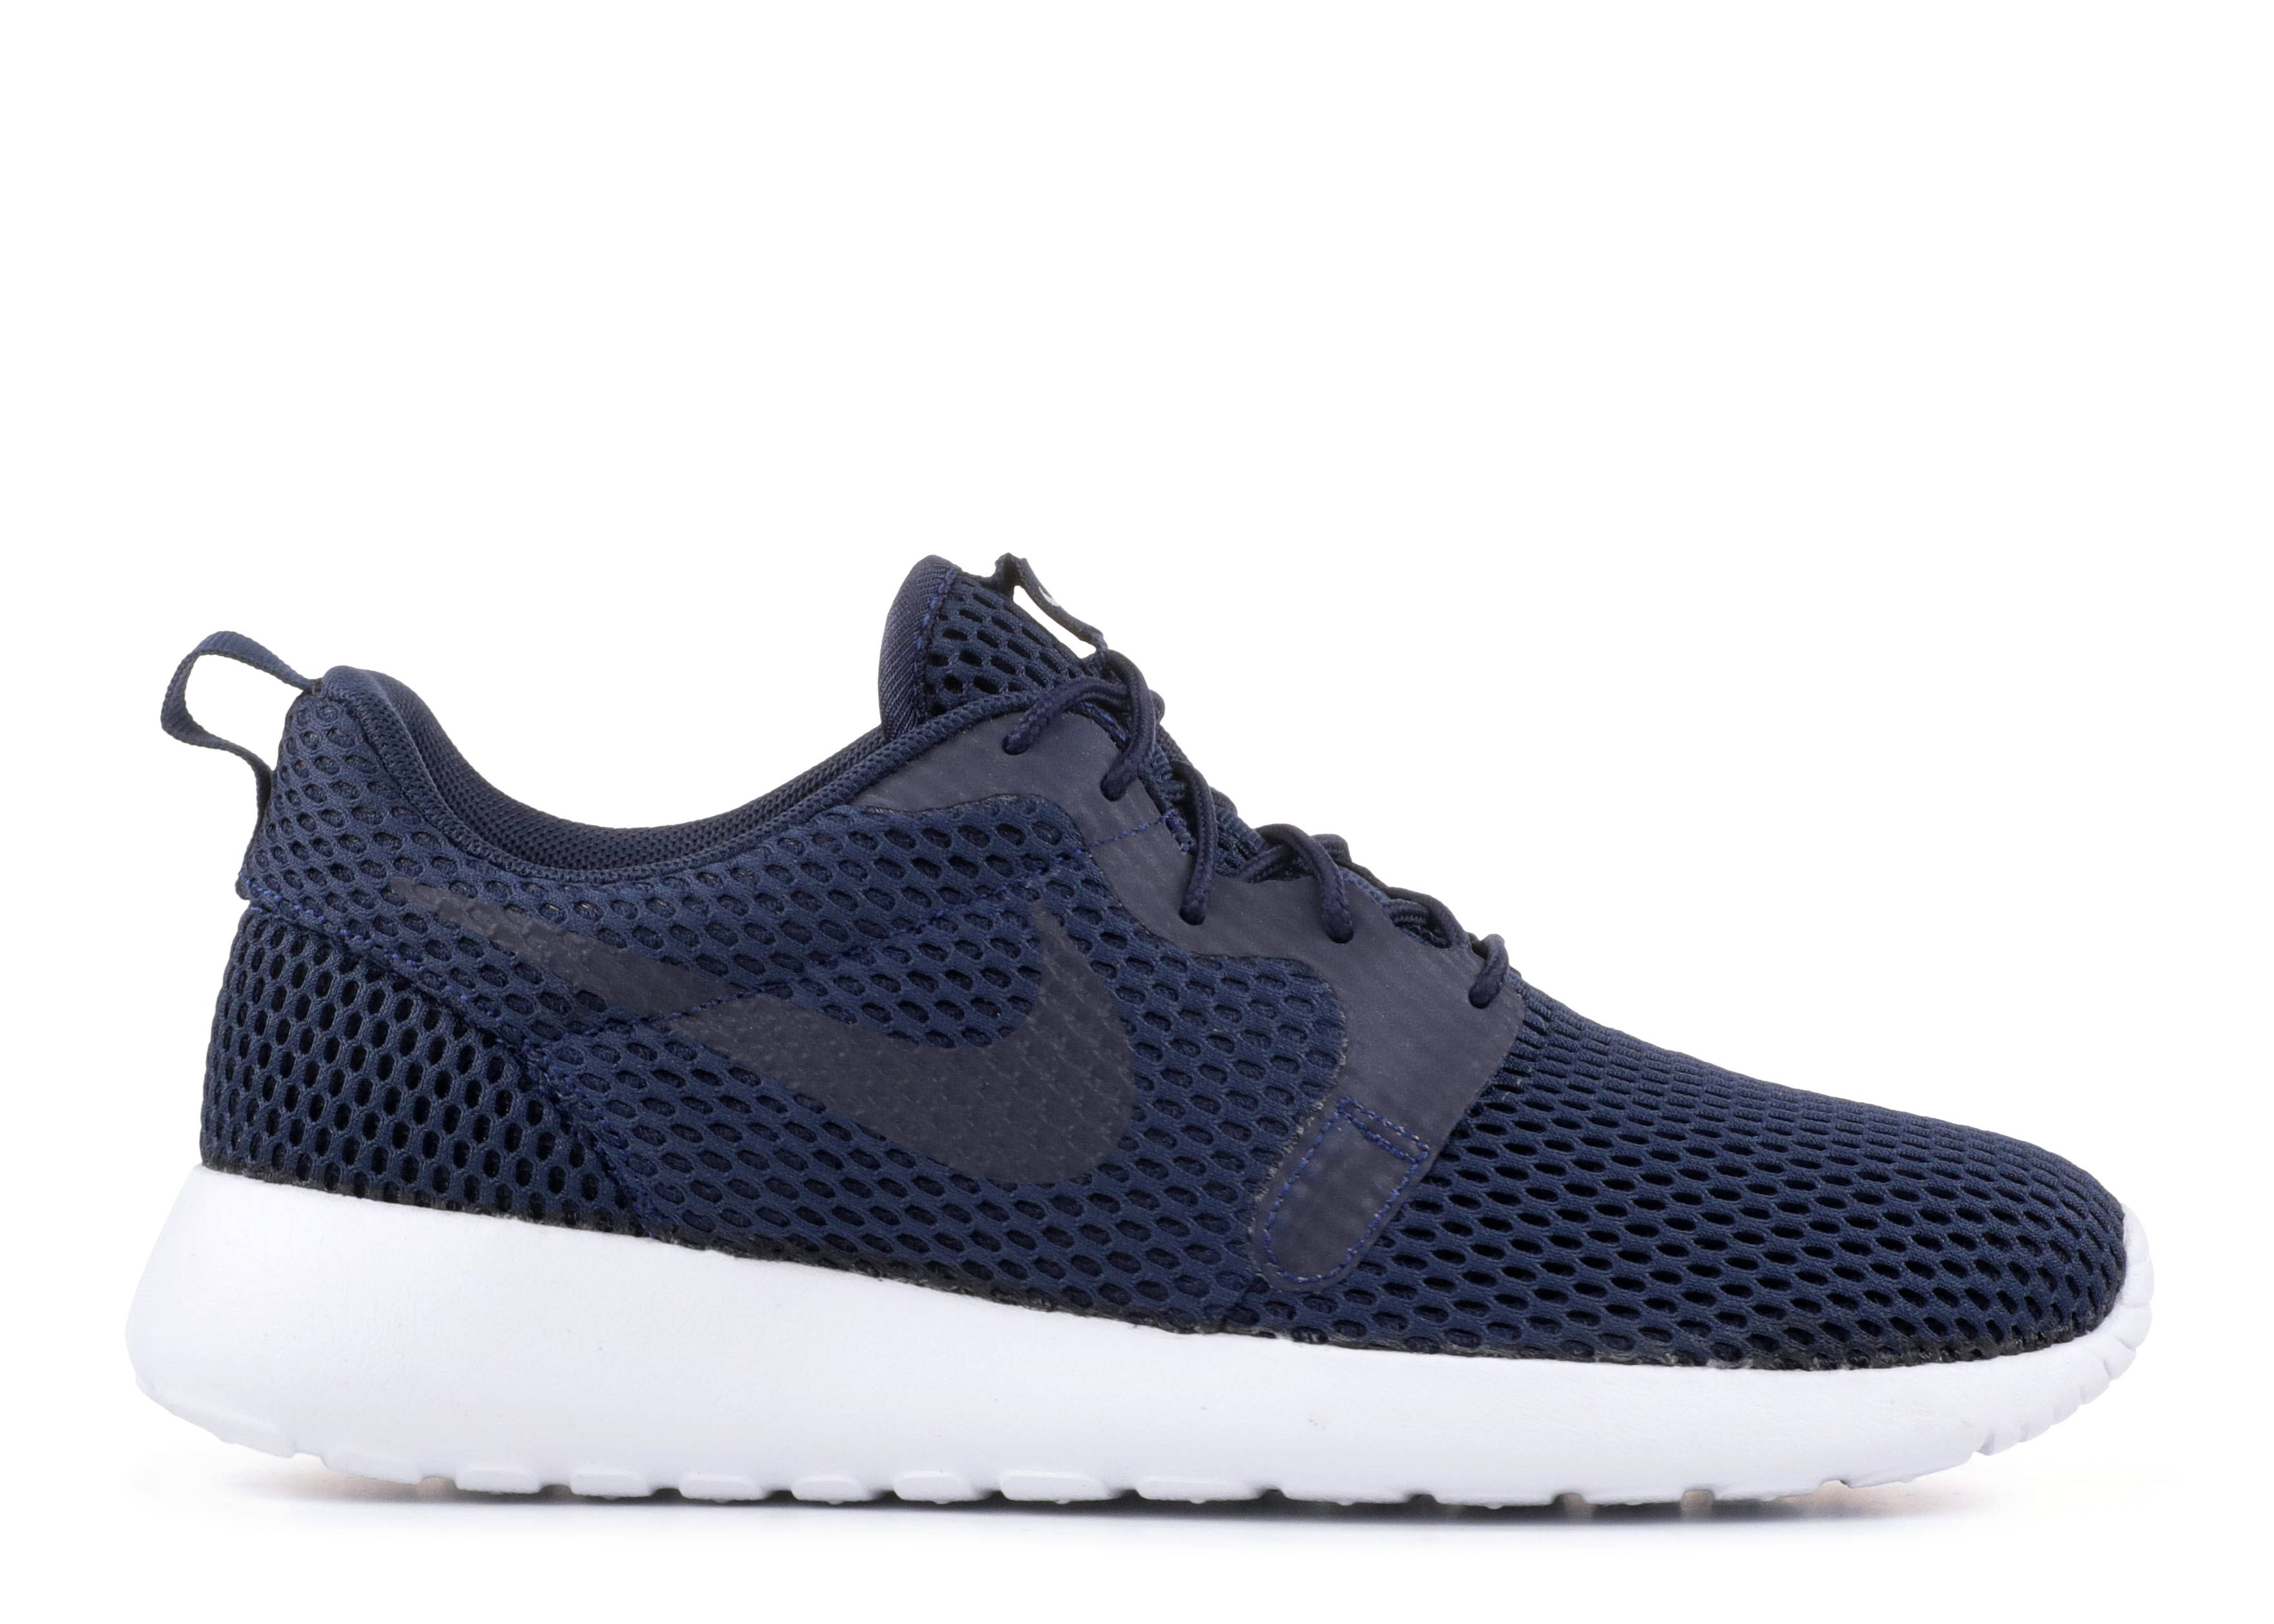 cheap for discount ab432 7f927 Nike Roshe One Hyp Br - Nike - 833125 400 - midnight navy ...